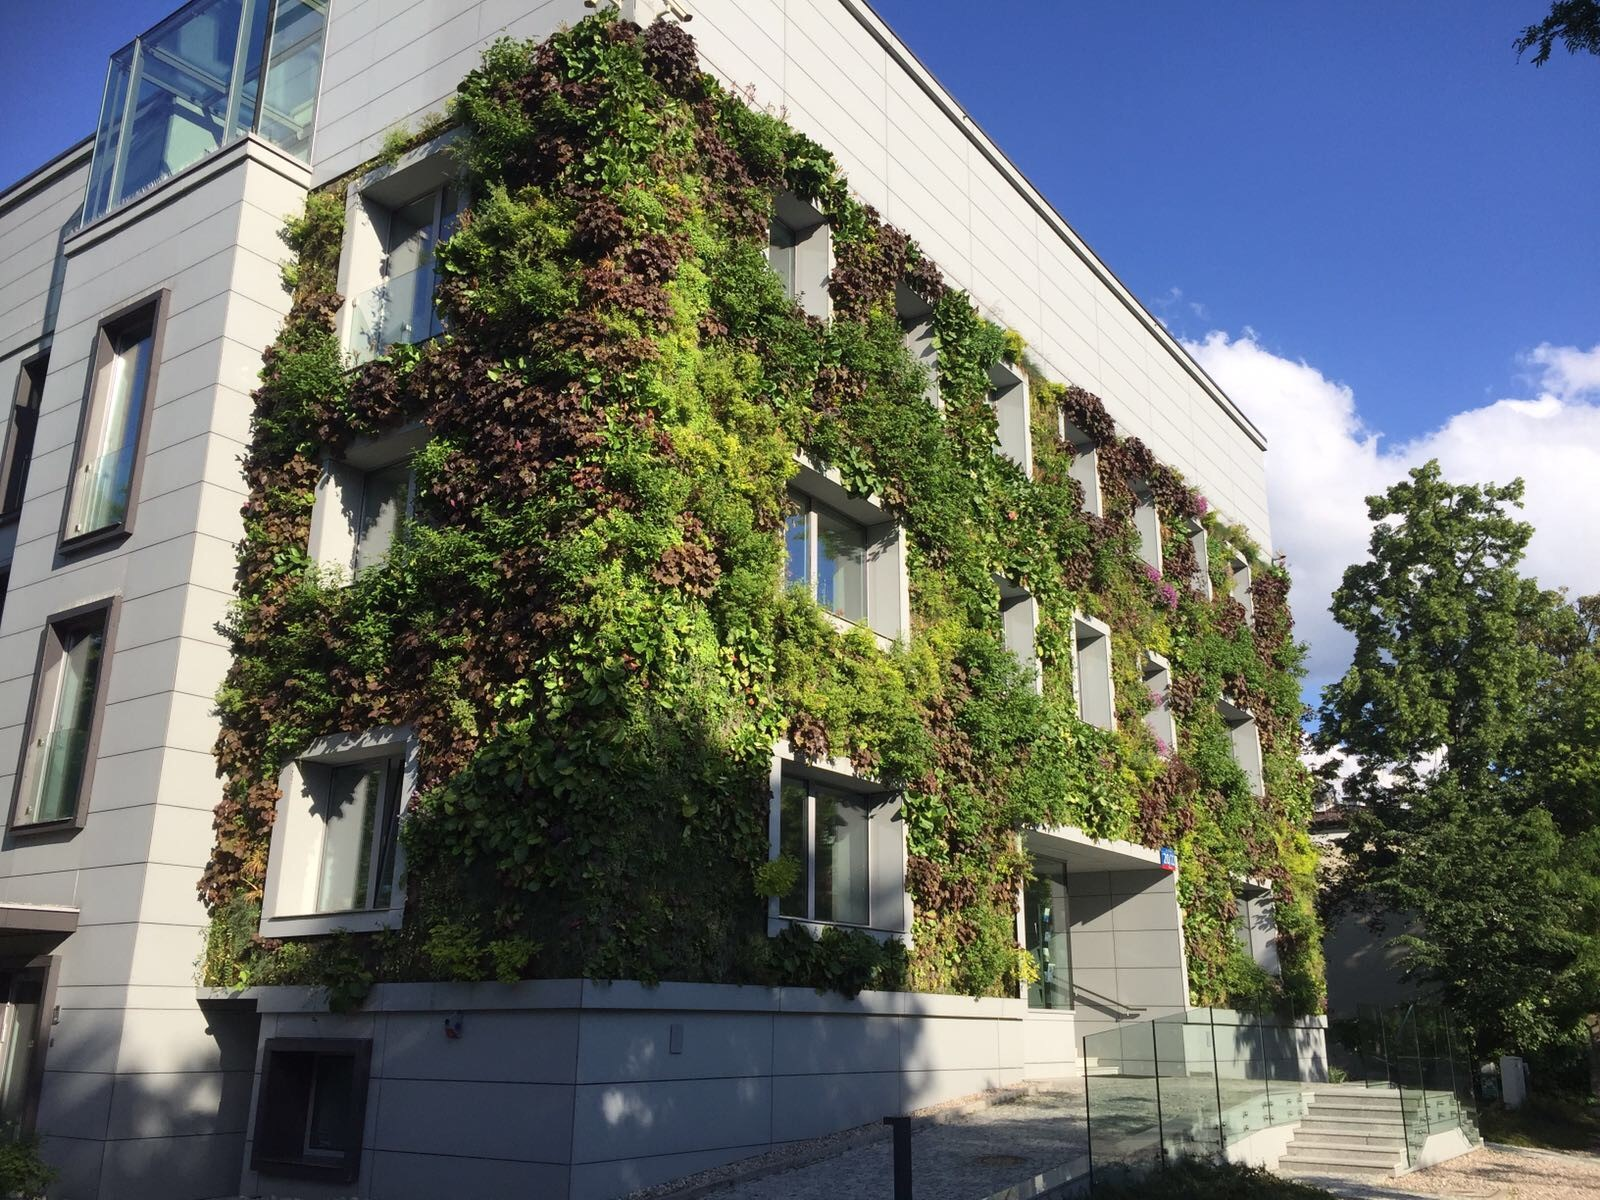 Outdoor SemperGreenwall Warsaw, Poland, June 2017